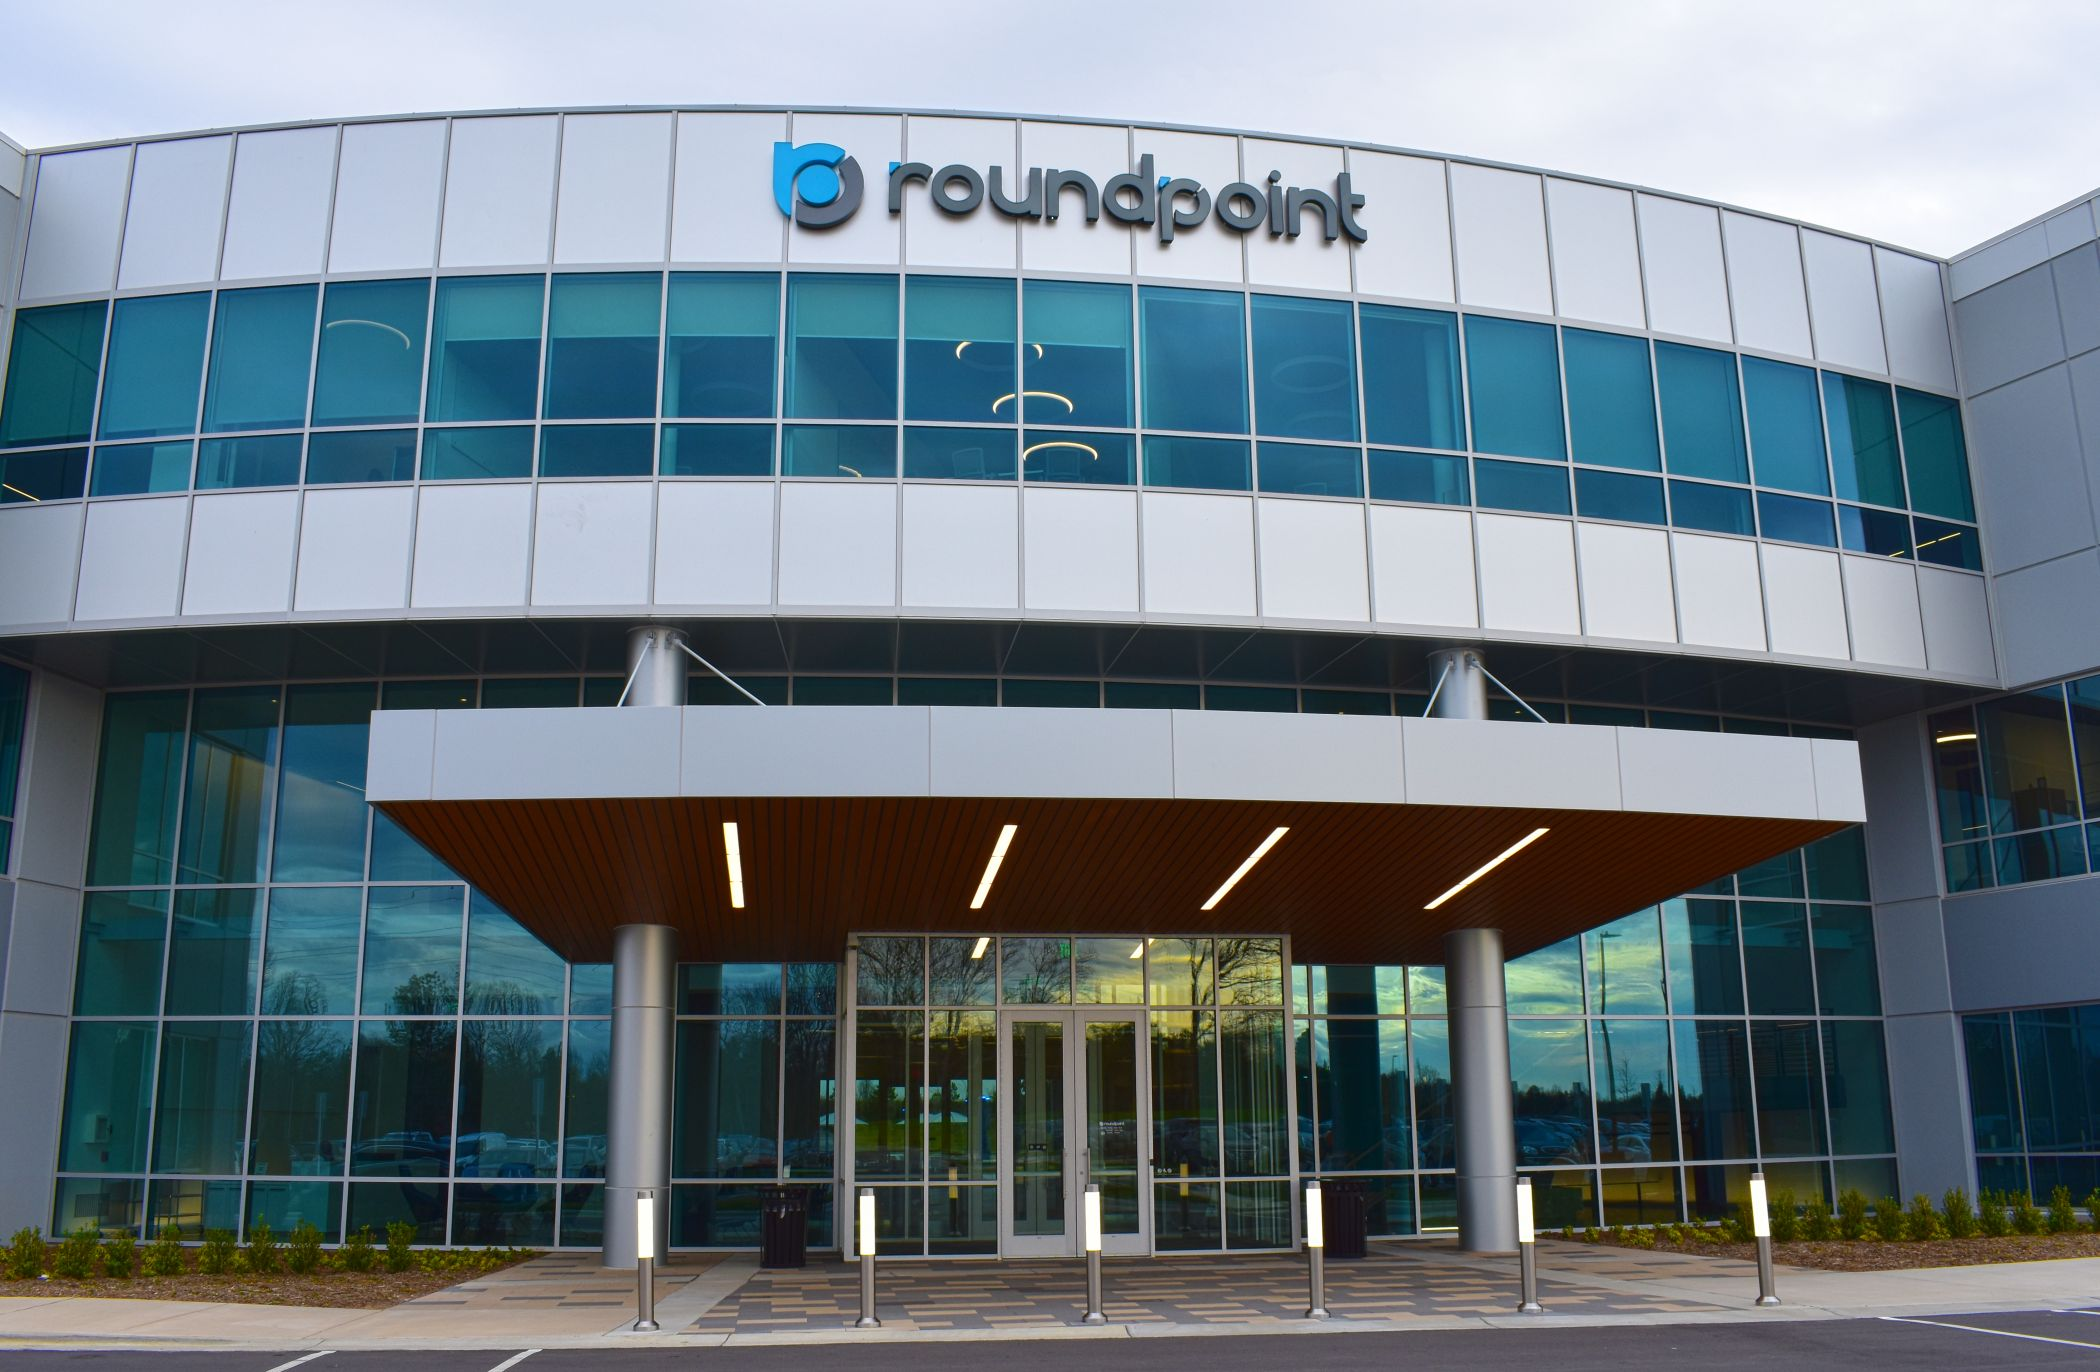 Roundpoint